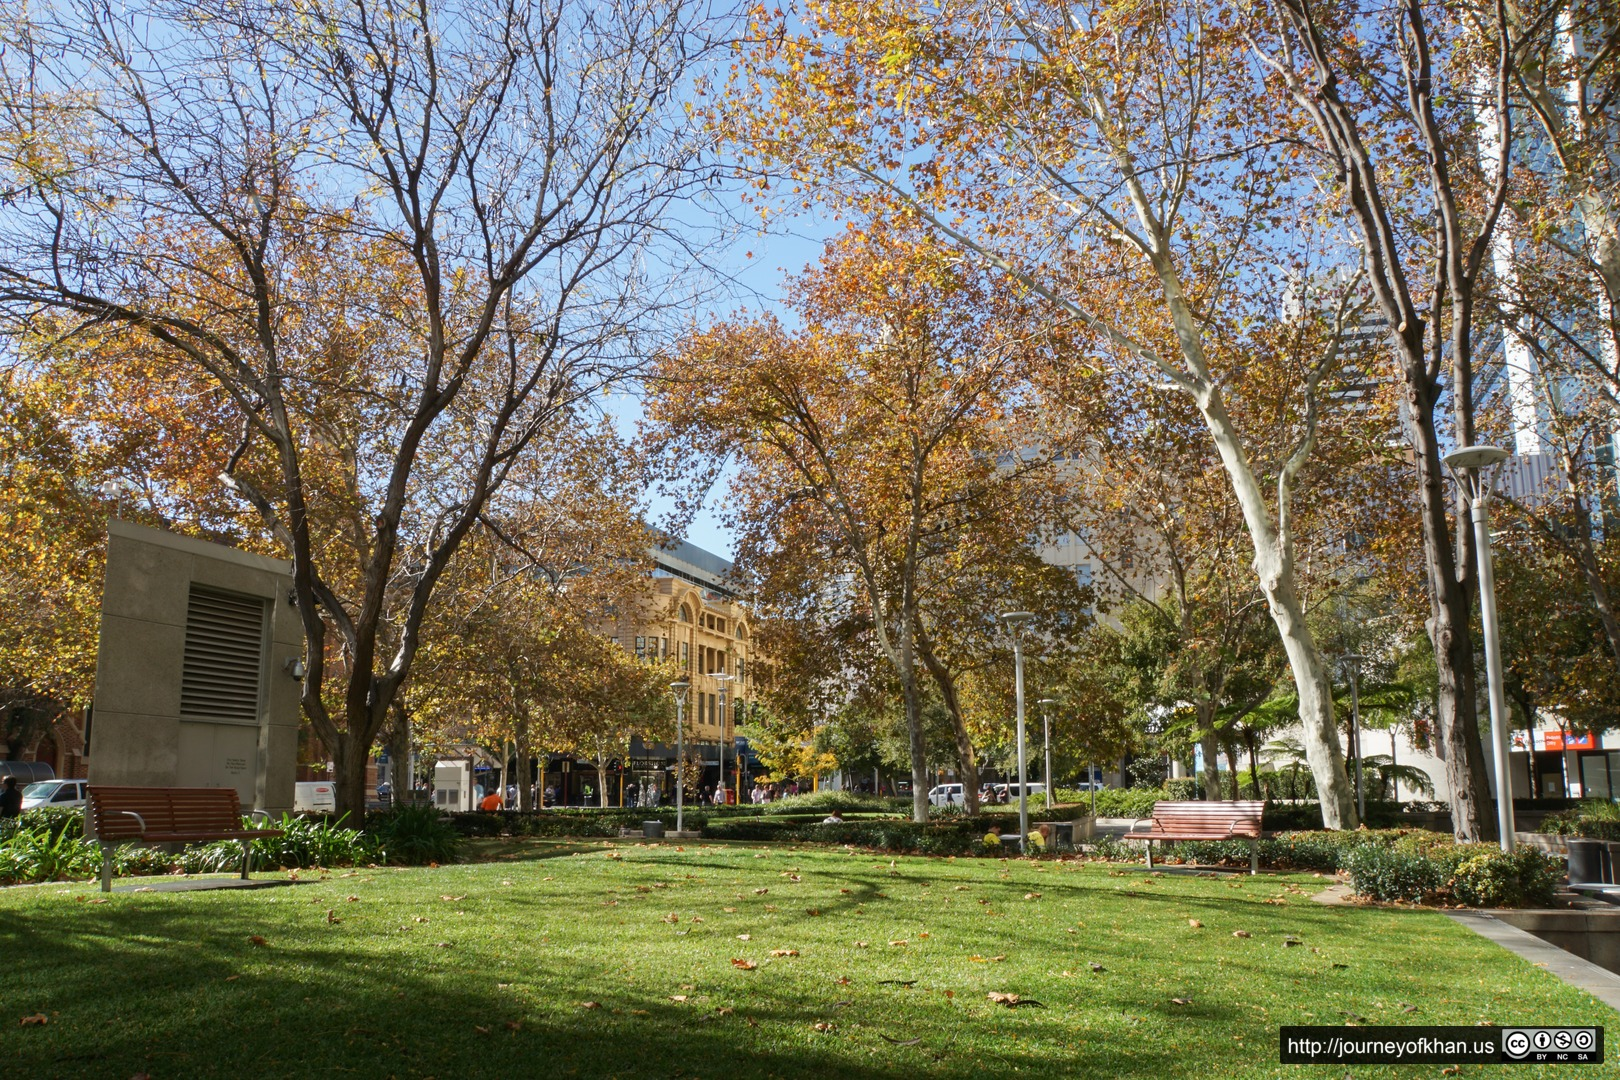 Park in the City of Perth